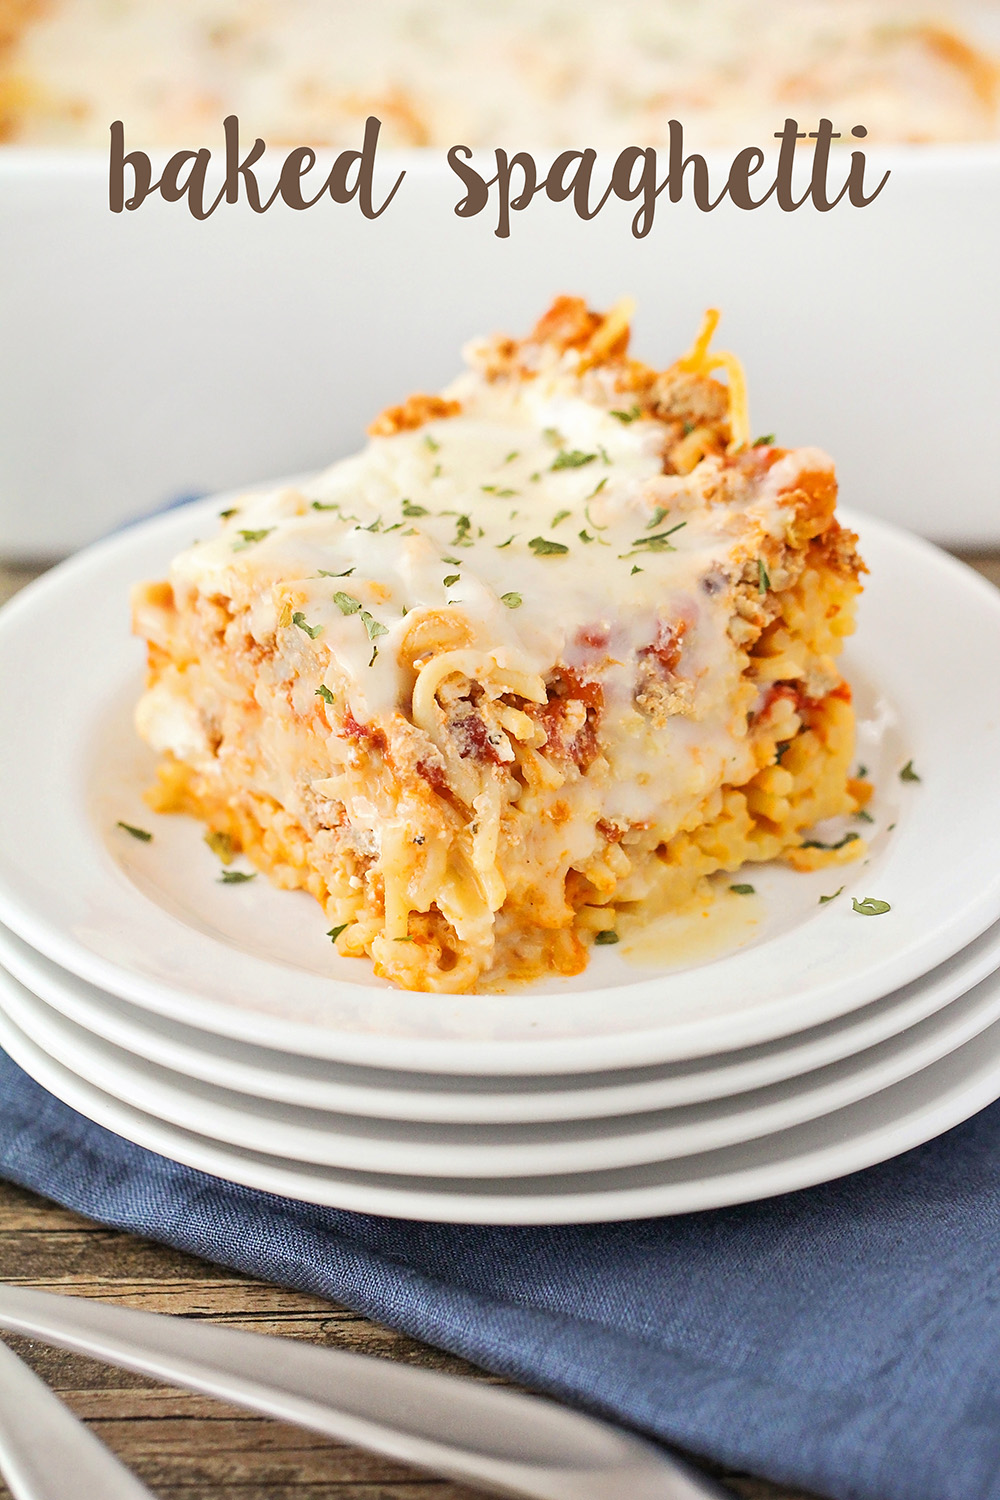 This savory and cheesy baked spaghetti is so delicious and so easy to make!